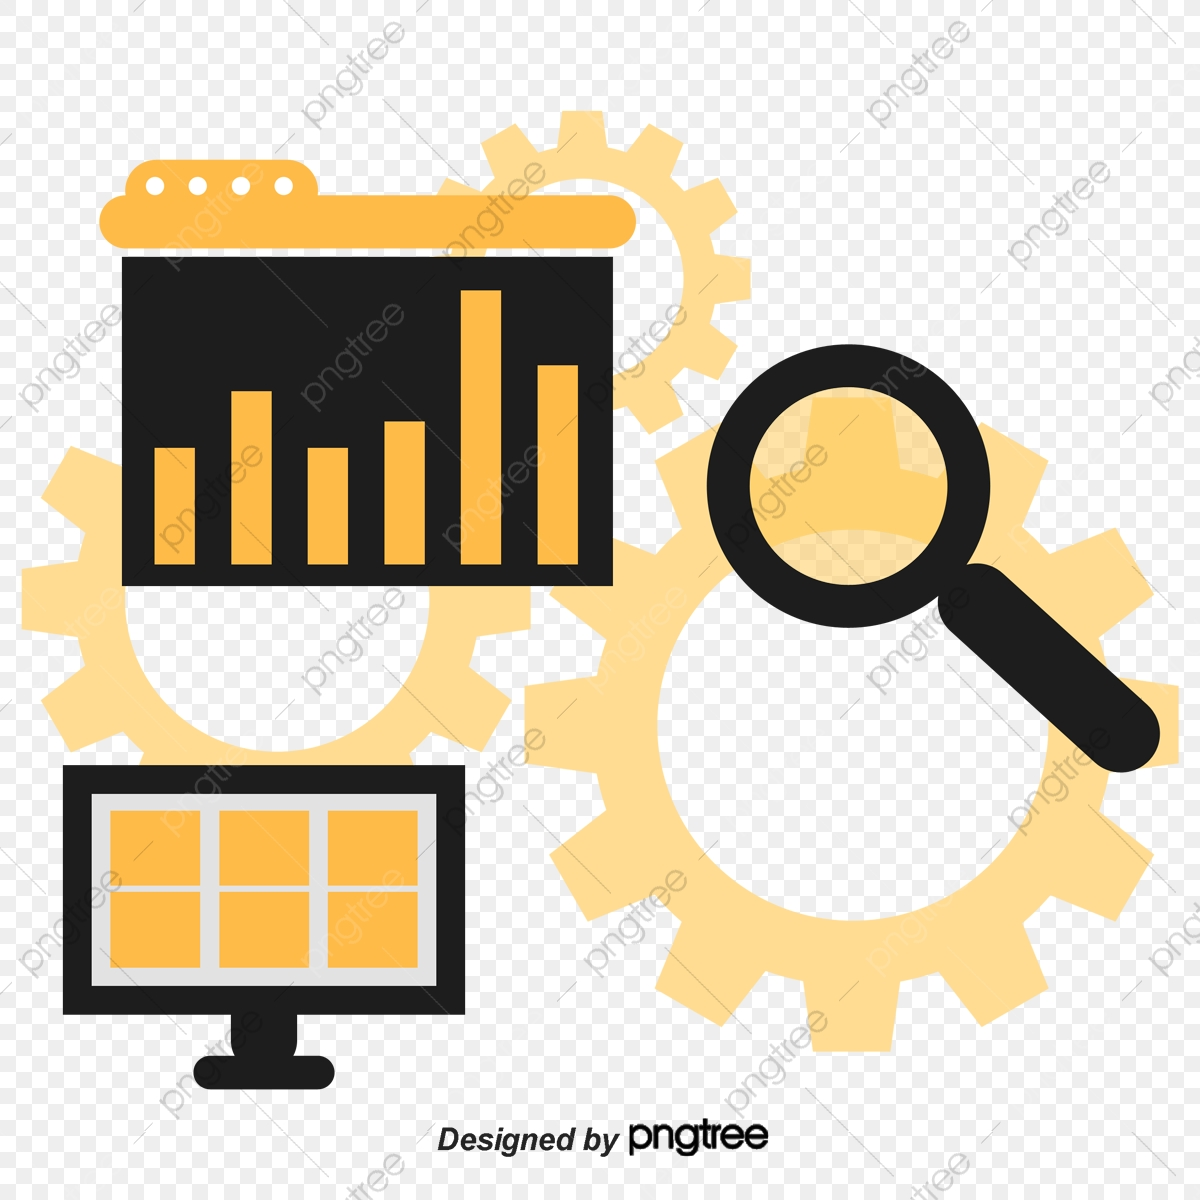 Market Data Trending, Feasibility Analysis, Demand Analysis, Data